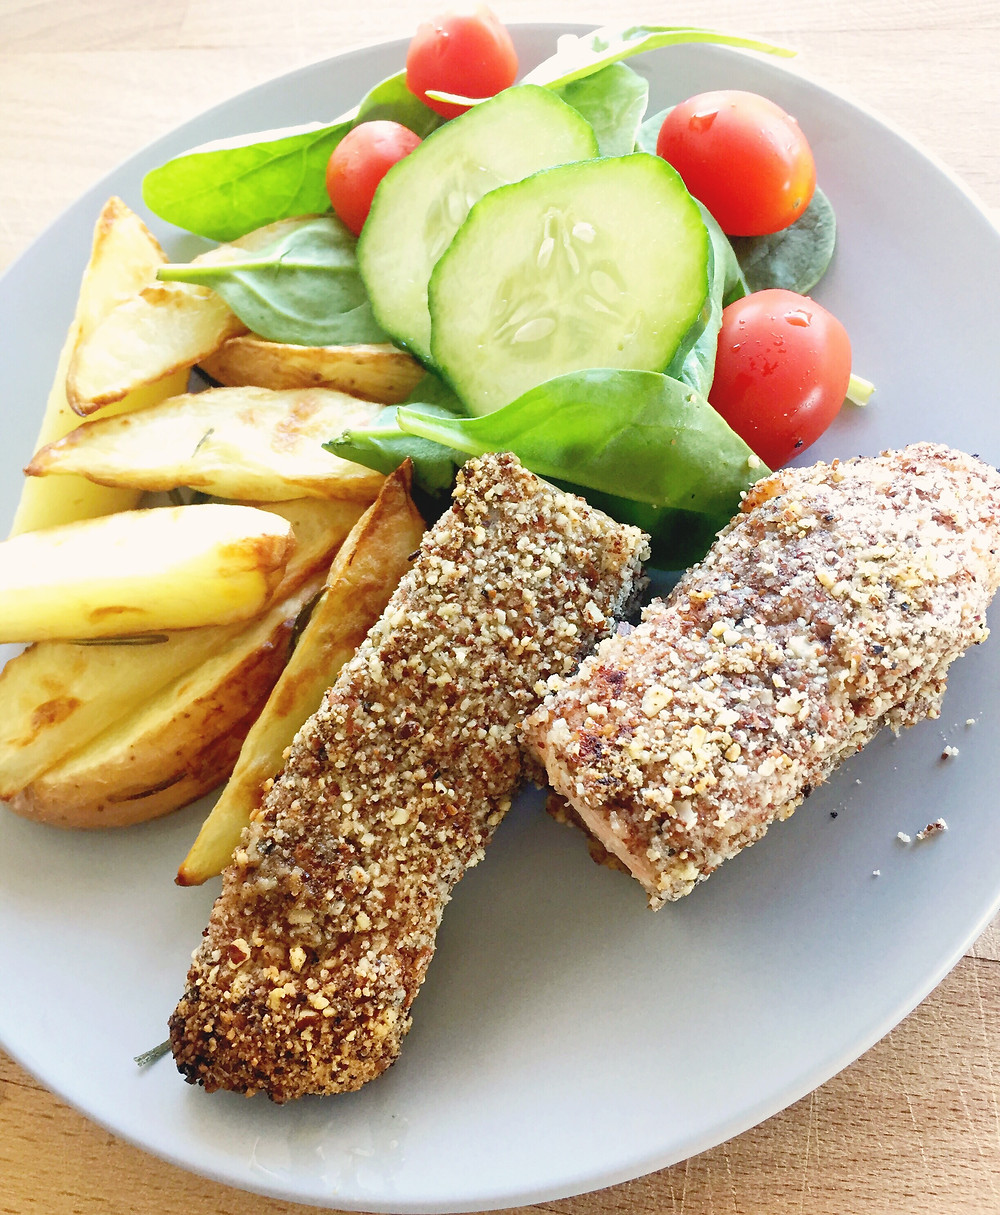 crusted salmon fillets, potato wedges, salad